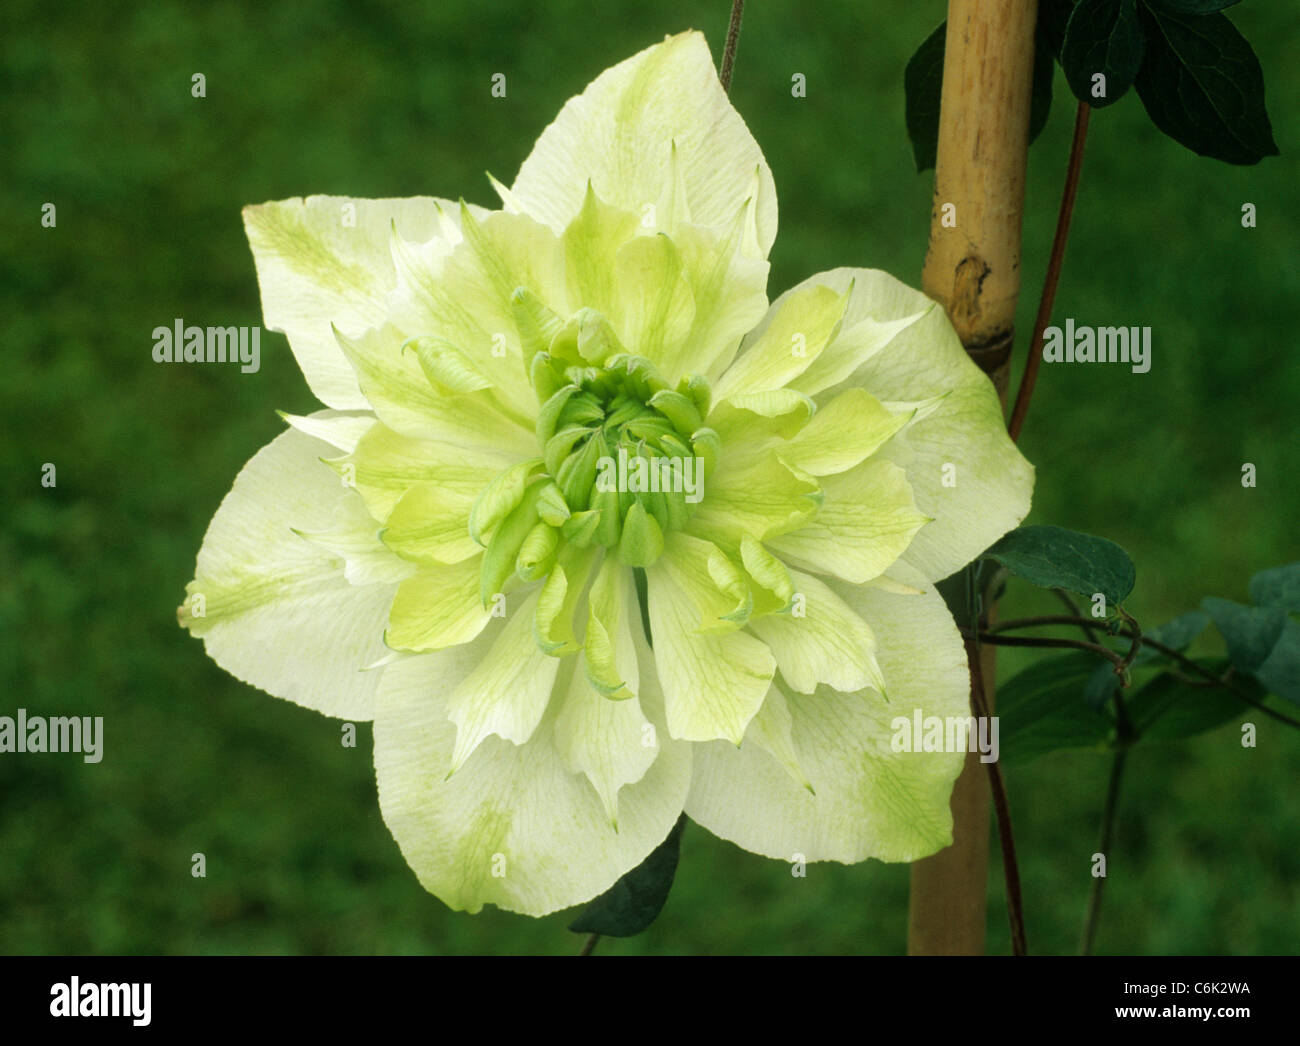 Clematis Florida Flora Pleno Cream Creamy Yellow Flower Flowers